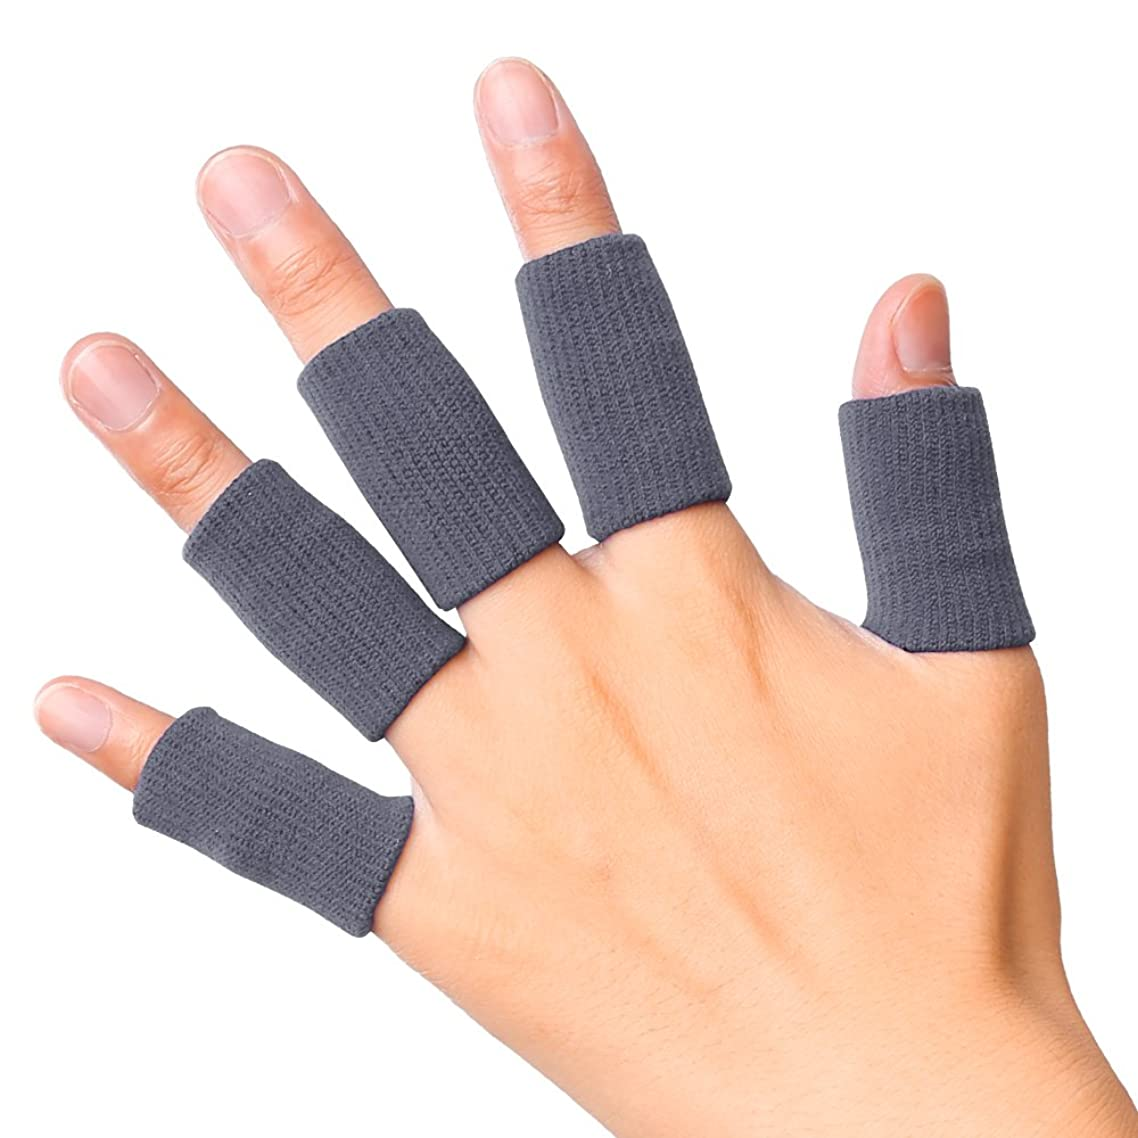 JBM Adult Finger Brace Splint Sleeve Thumb Support Protector Soft Comfortable Cushion Pressure Safe Elastic Breathable Stabilizers for Basketball Volleyball Baseball Badminton Tennis Boating Gym